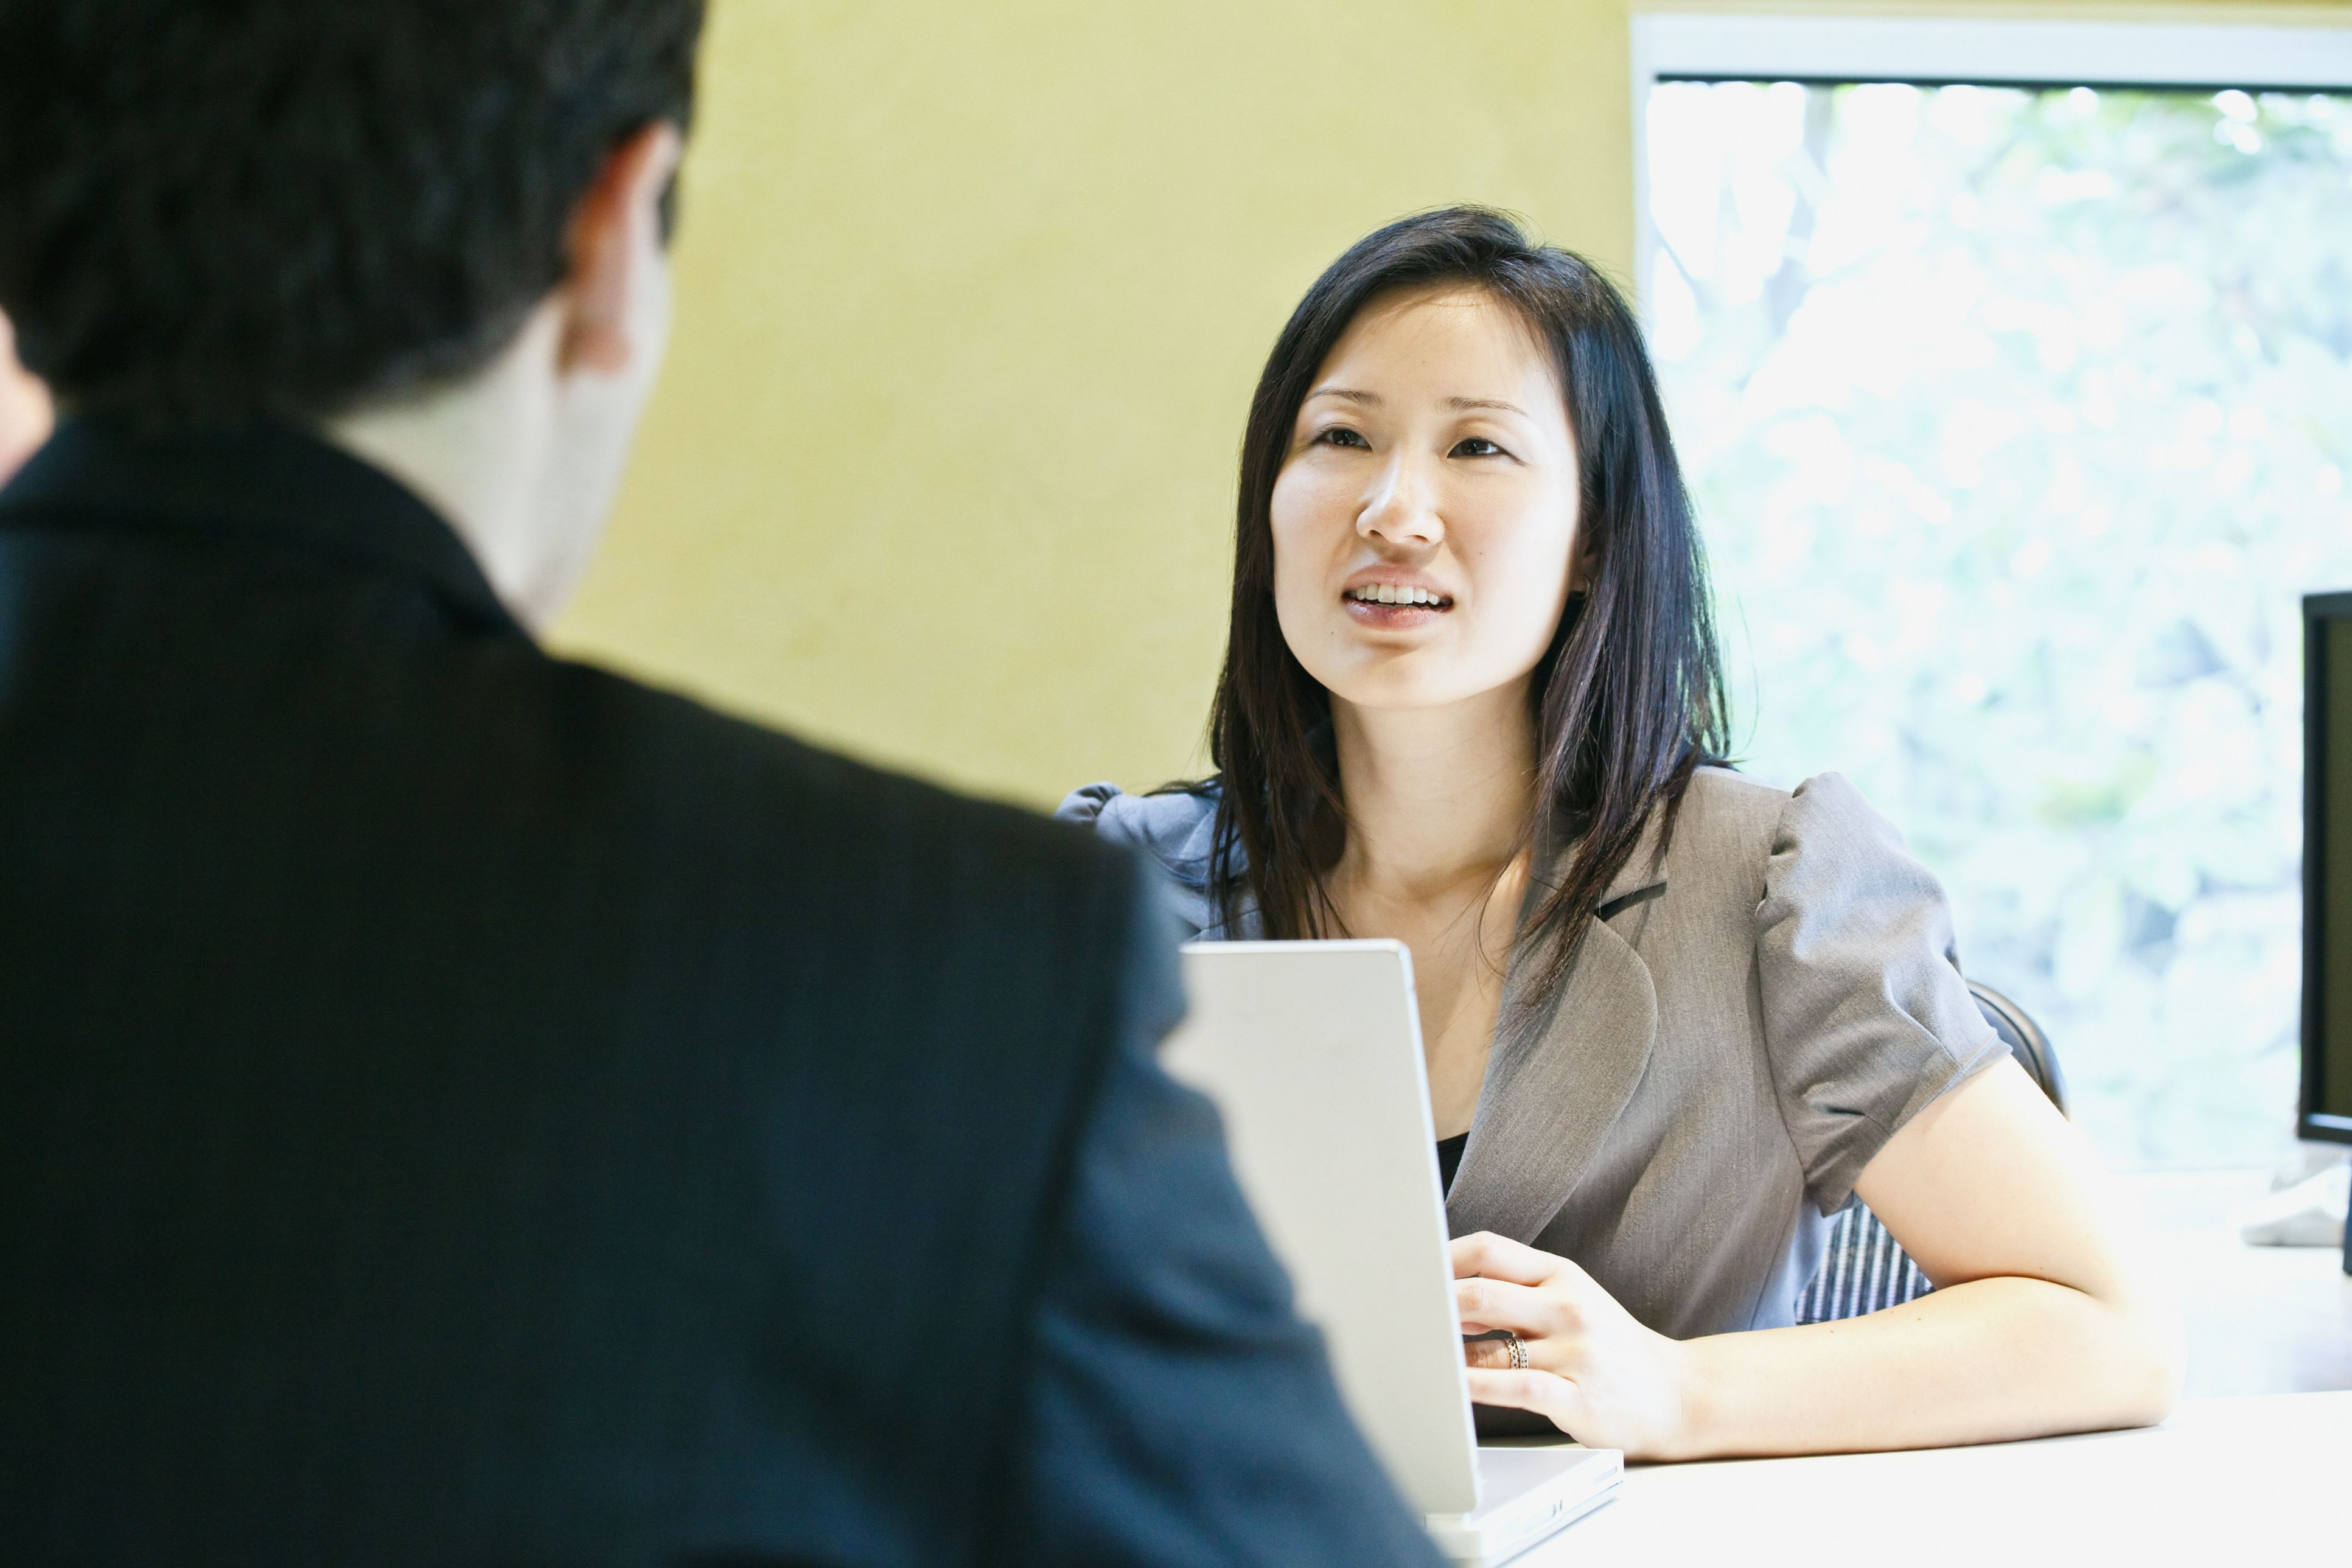 15 tips for getting ready to job search - Online Job Search Mistakes To Avoid Mind Your Online Profile